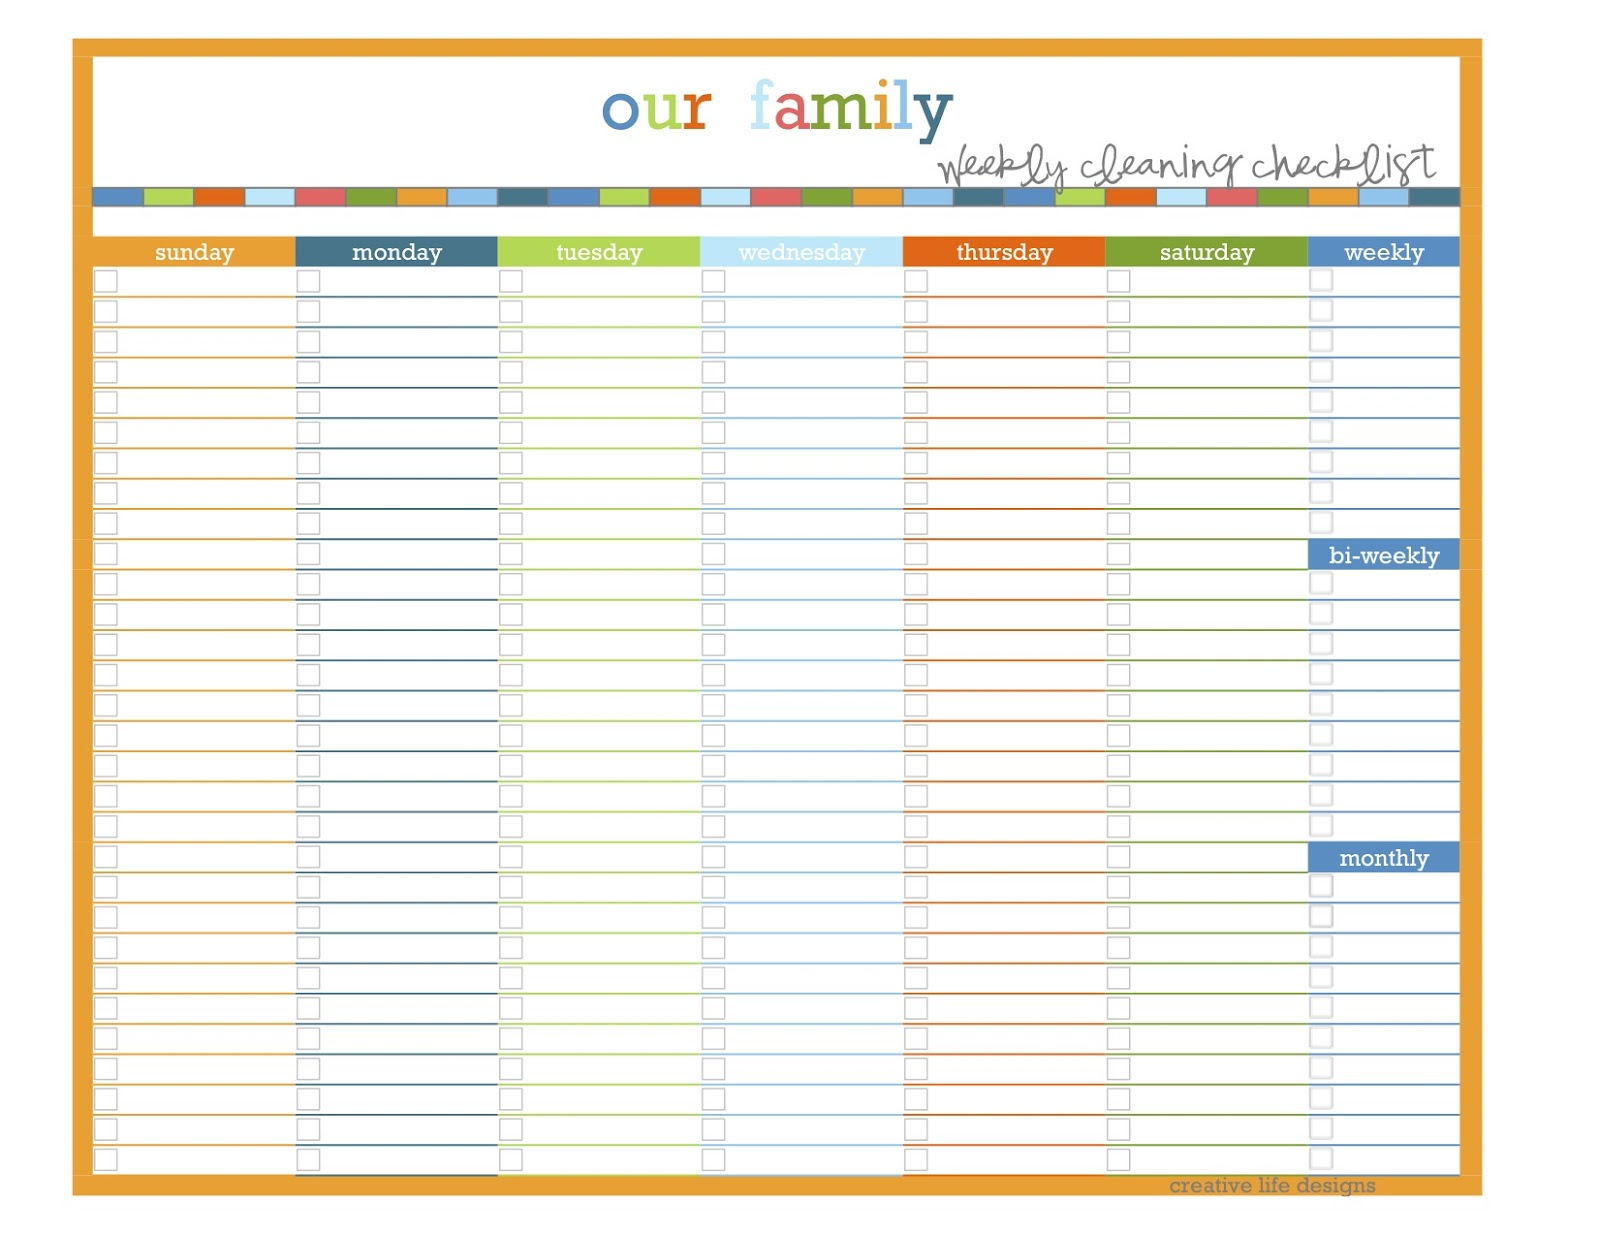 Creative life designs home management binder makeover for Domestic cleaning schedule template